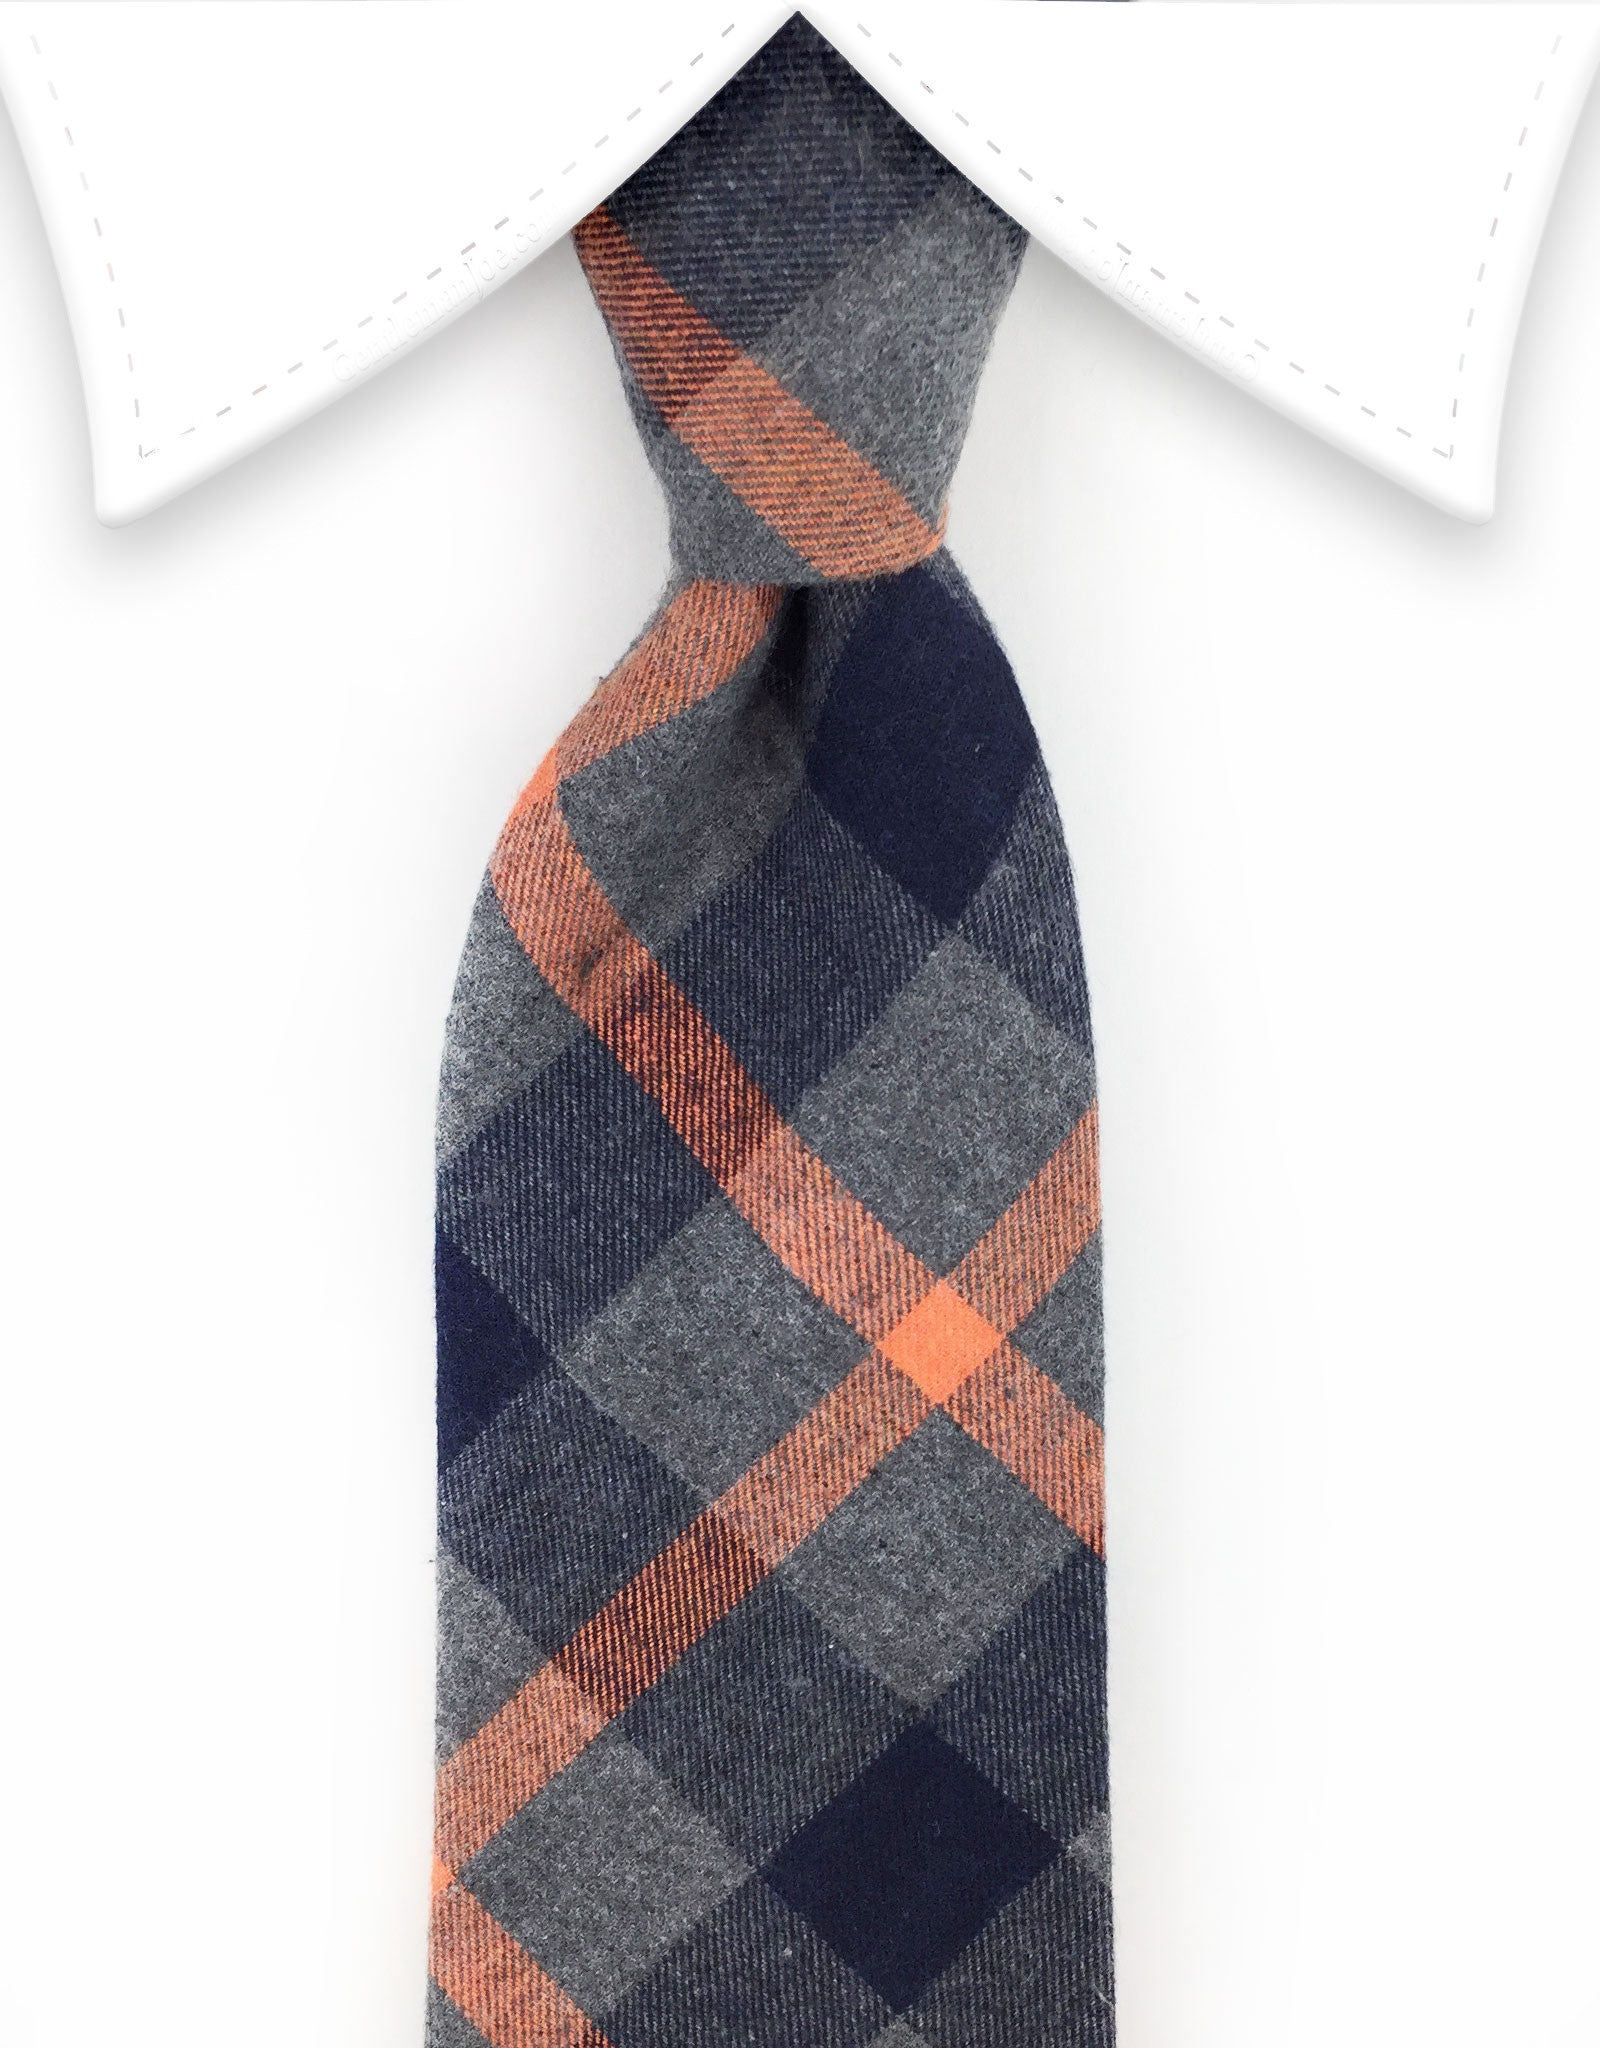 Charcoal gray & orange cotton tie